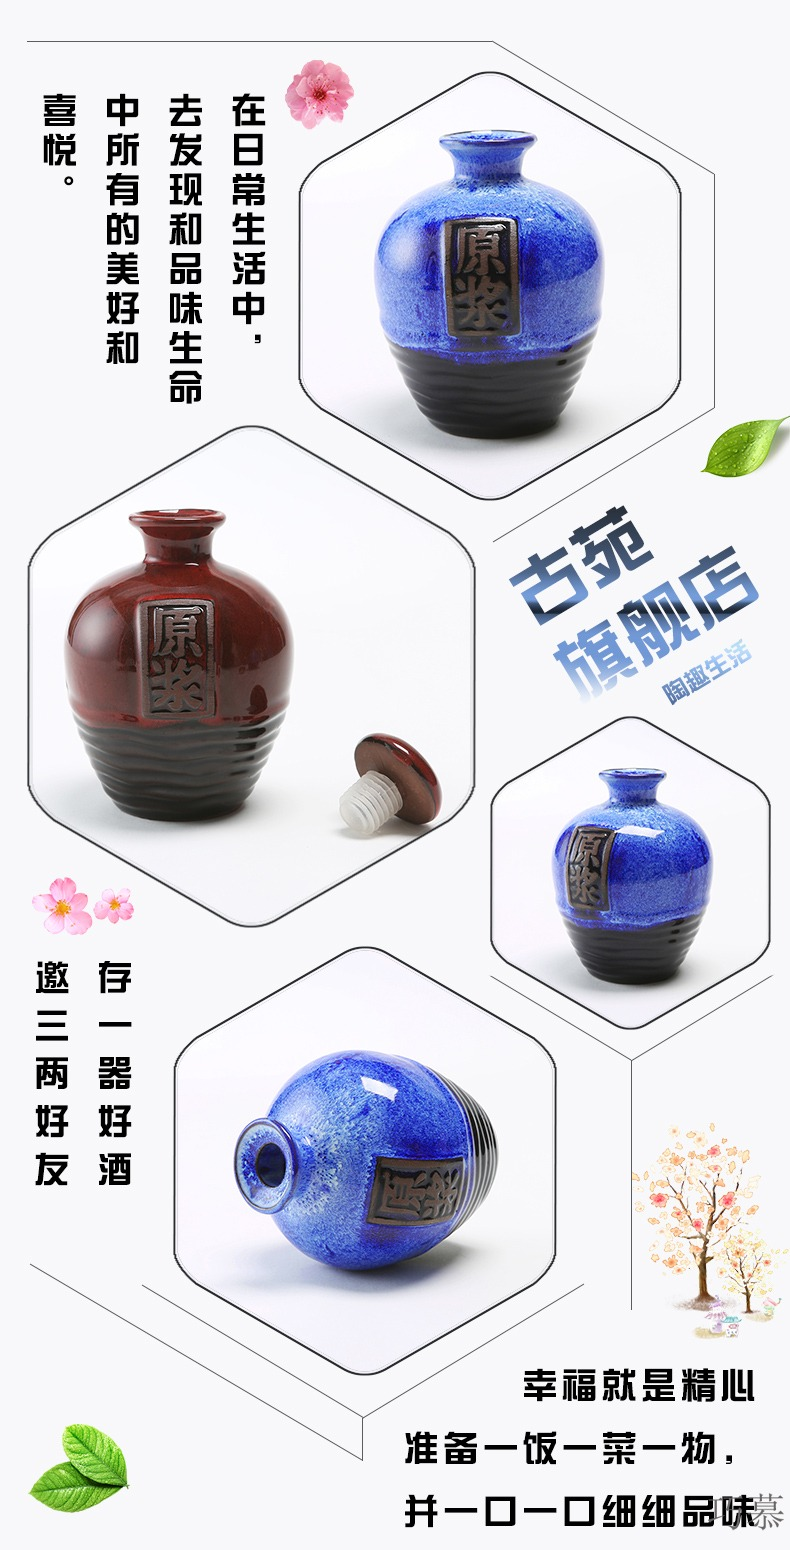 Qiao mu ceramic wine jars 2 jins put an empty bottle aged seal home antique white rice wine with cover earthenware jar